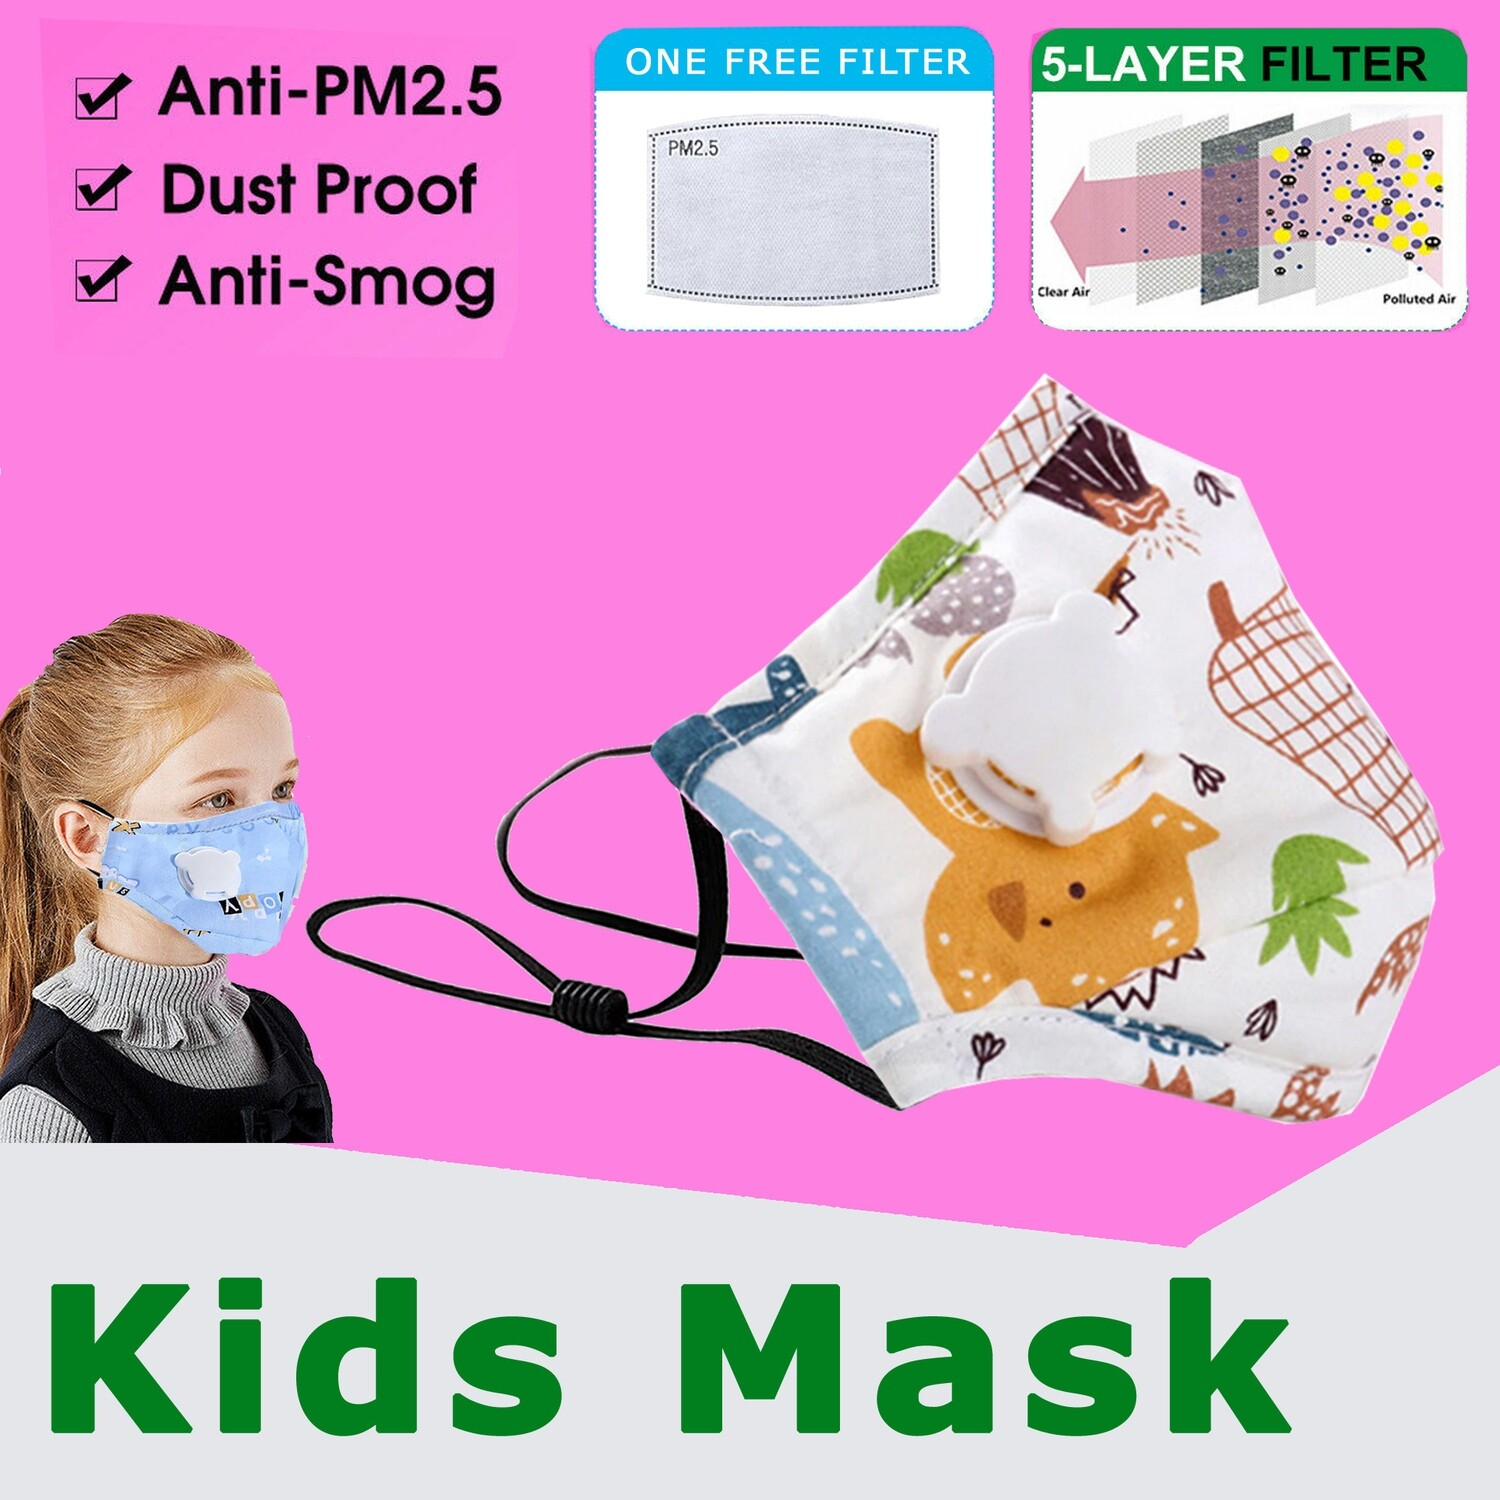 Baby/kids protective Face Mask with breath valve and 5 Layers Replaceable Anti Haze Filter PM2.5. Washable, reusable anti-dust.